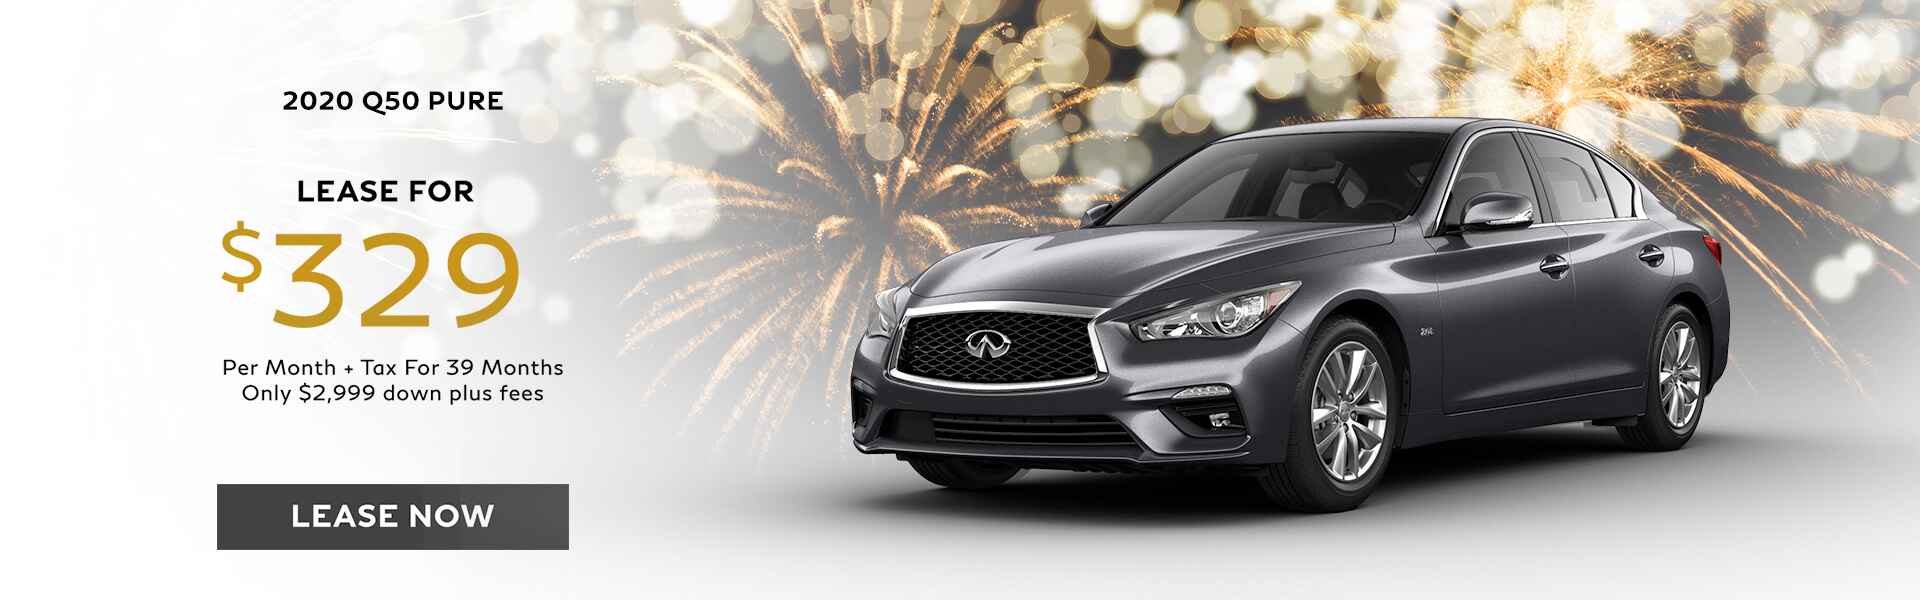 Q50 PURE - Lease for $329